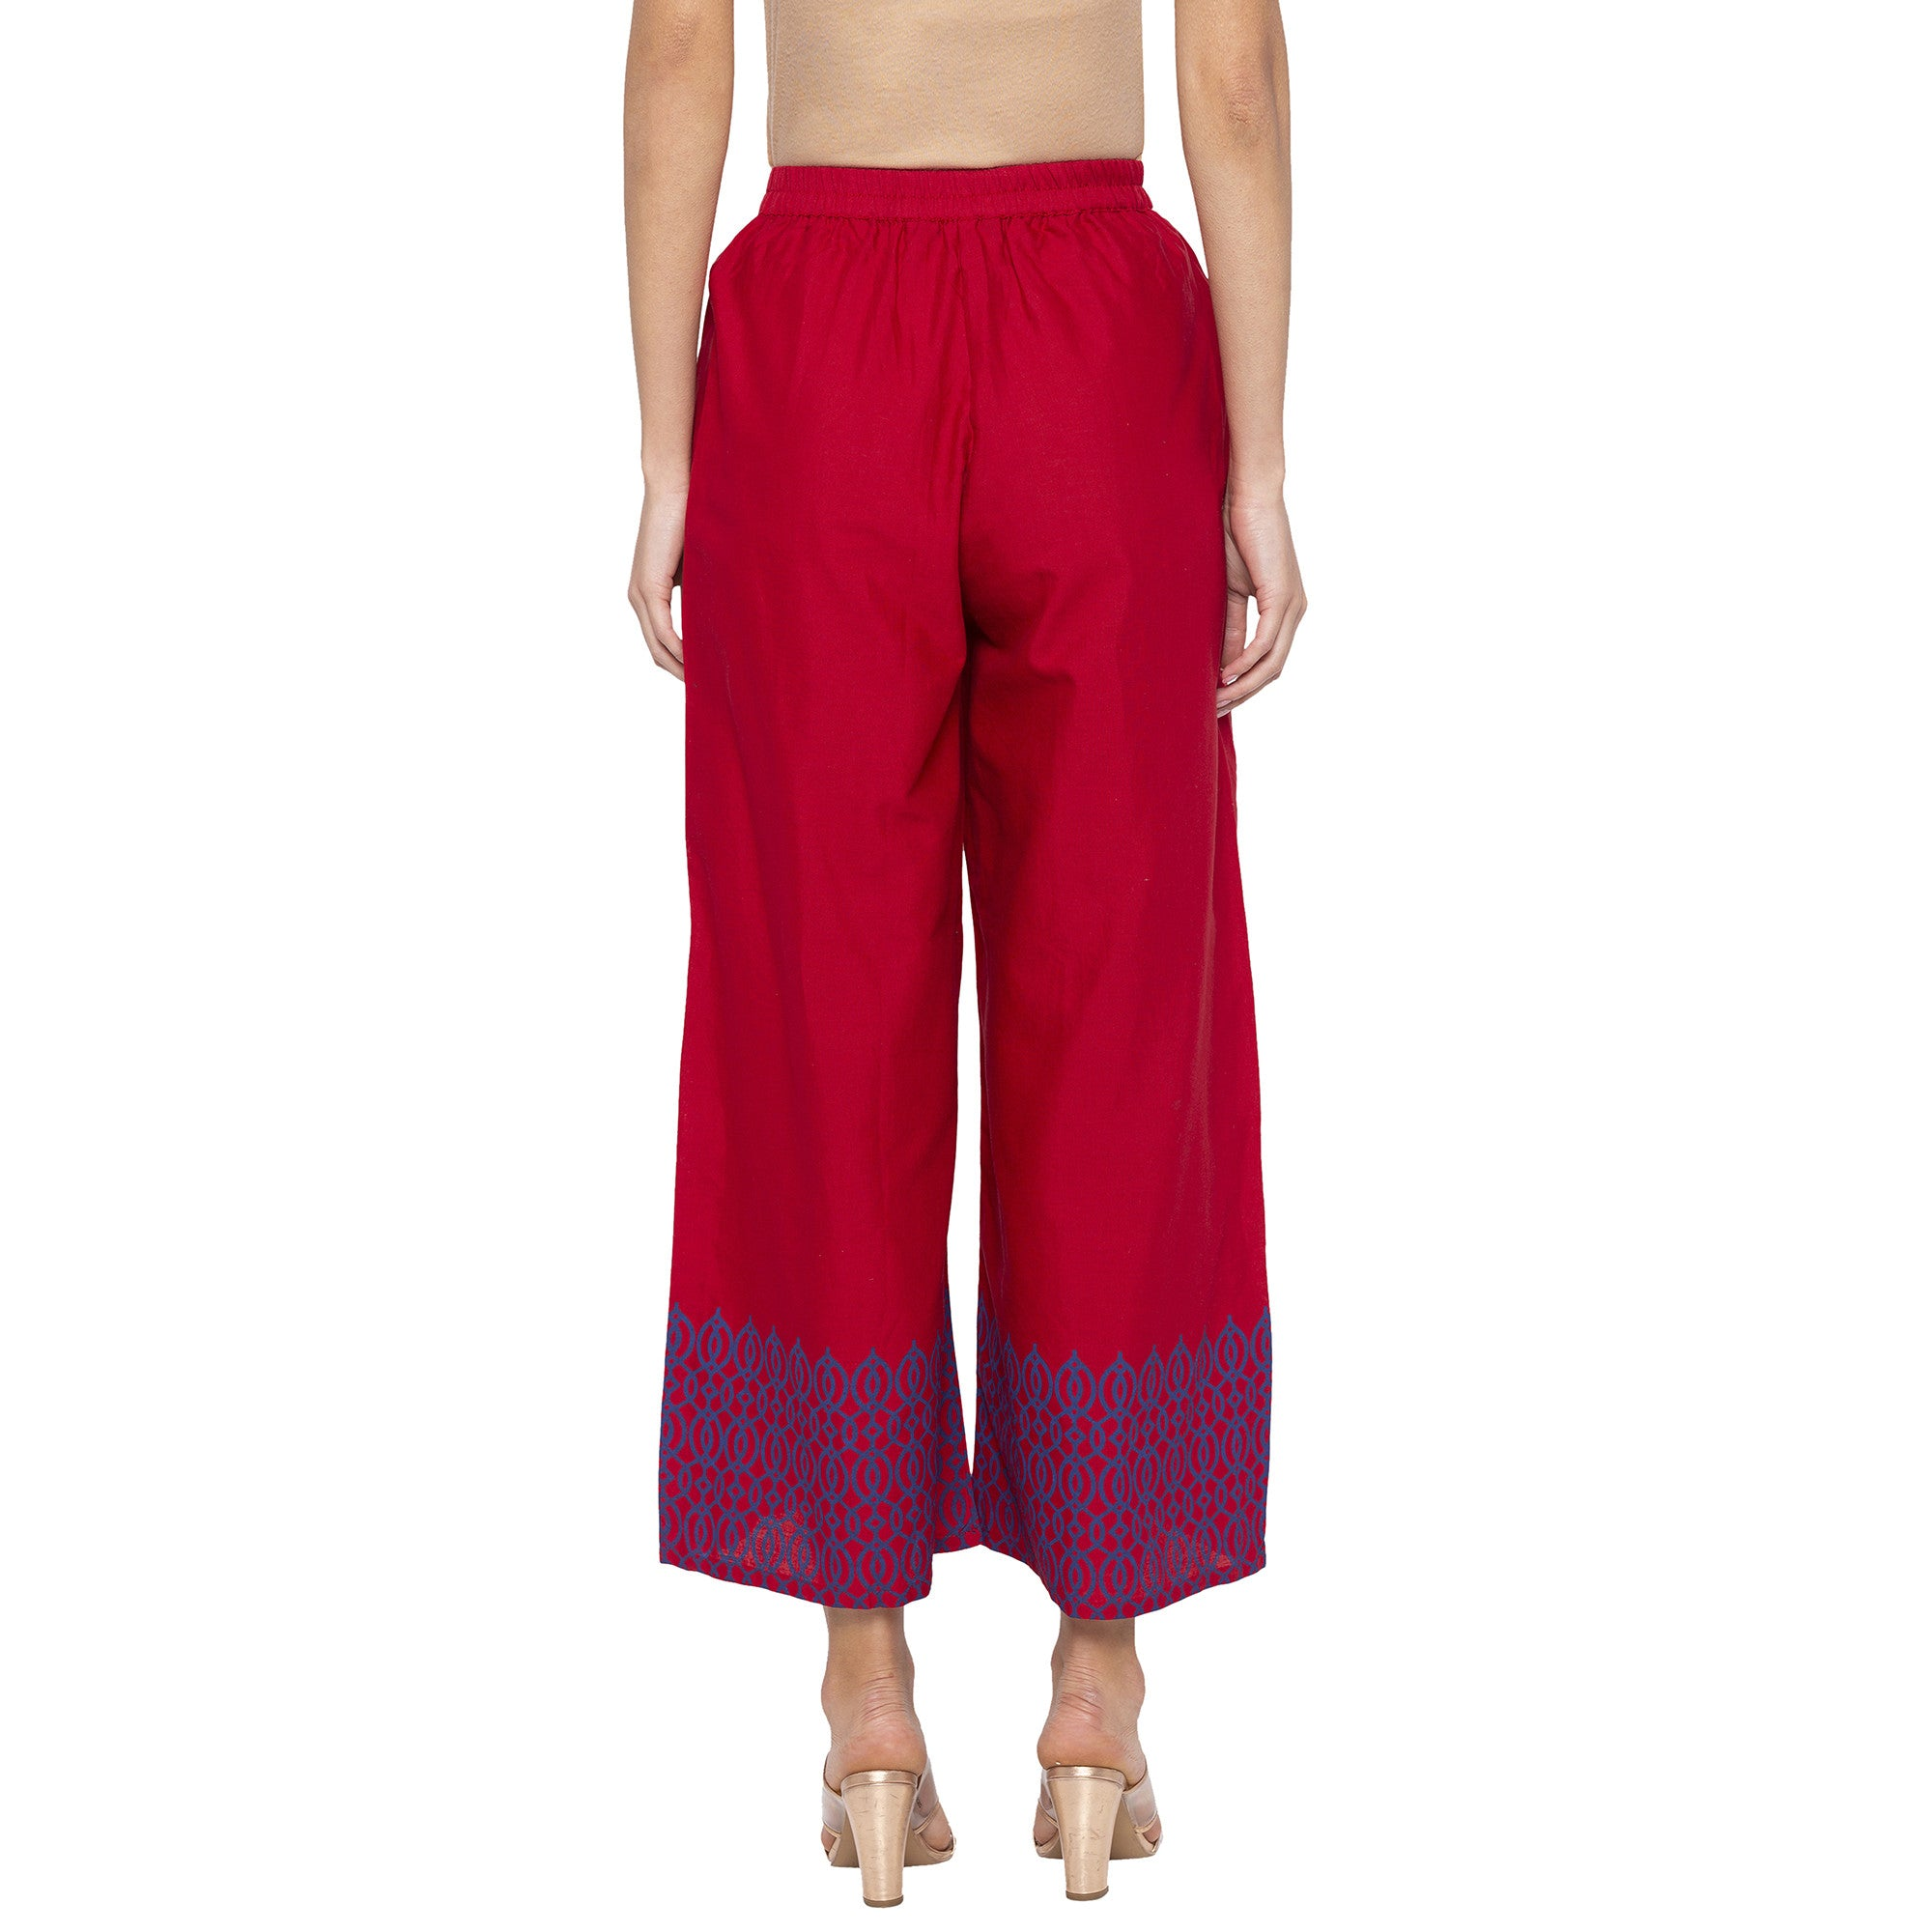 Casual Maroon Color Loose Fit Cropped Parallel Trousers-3